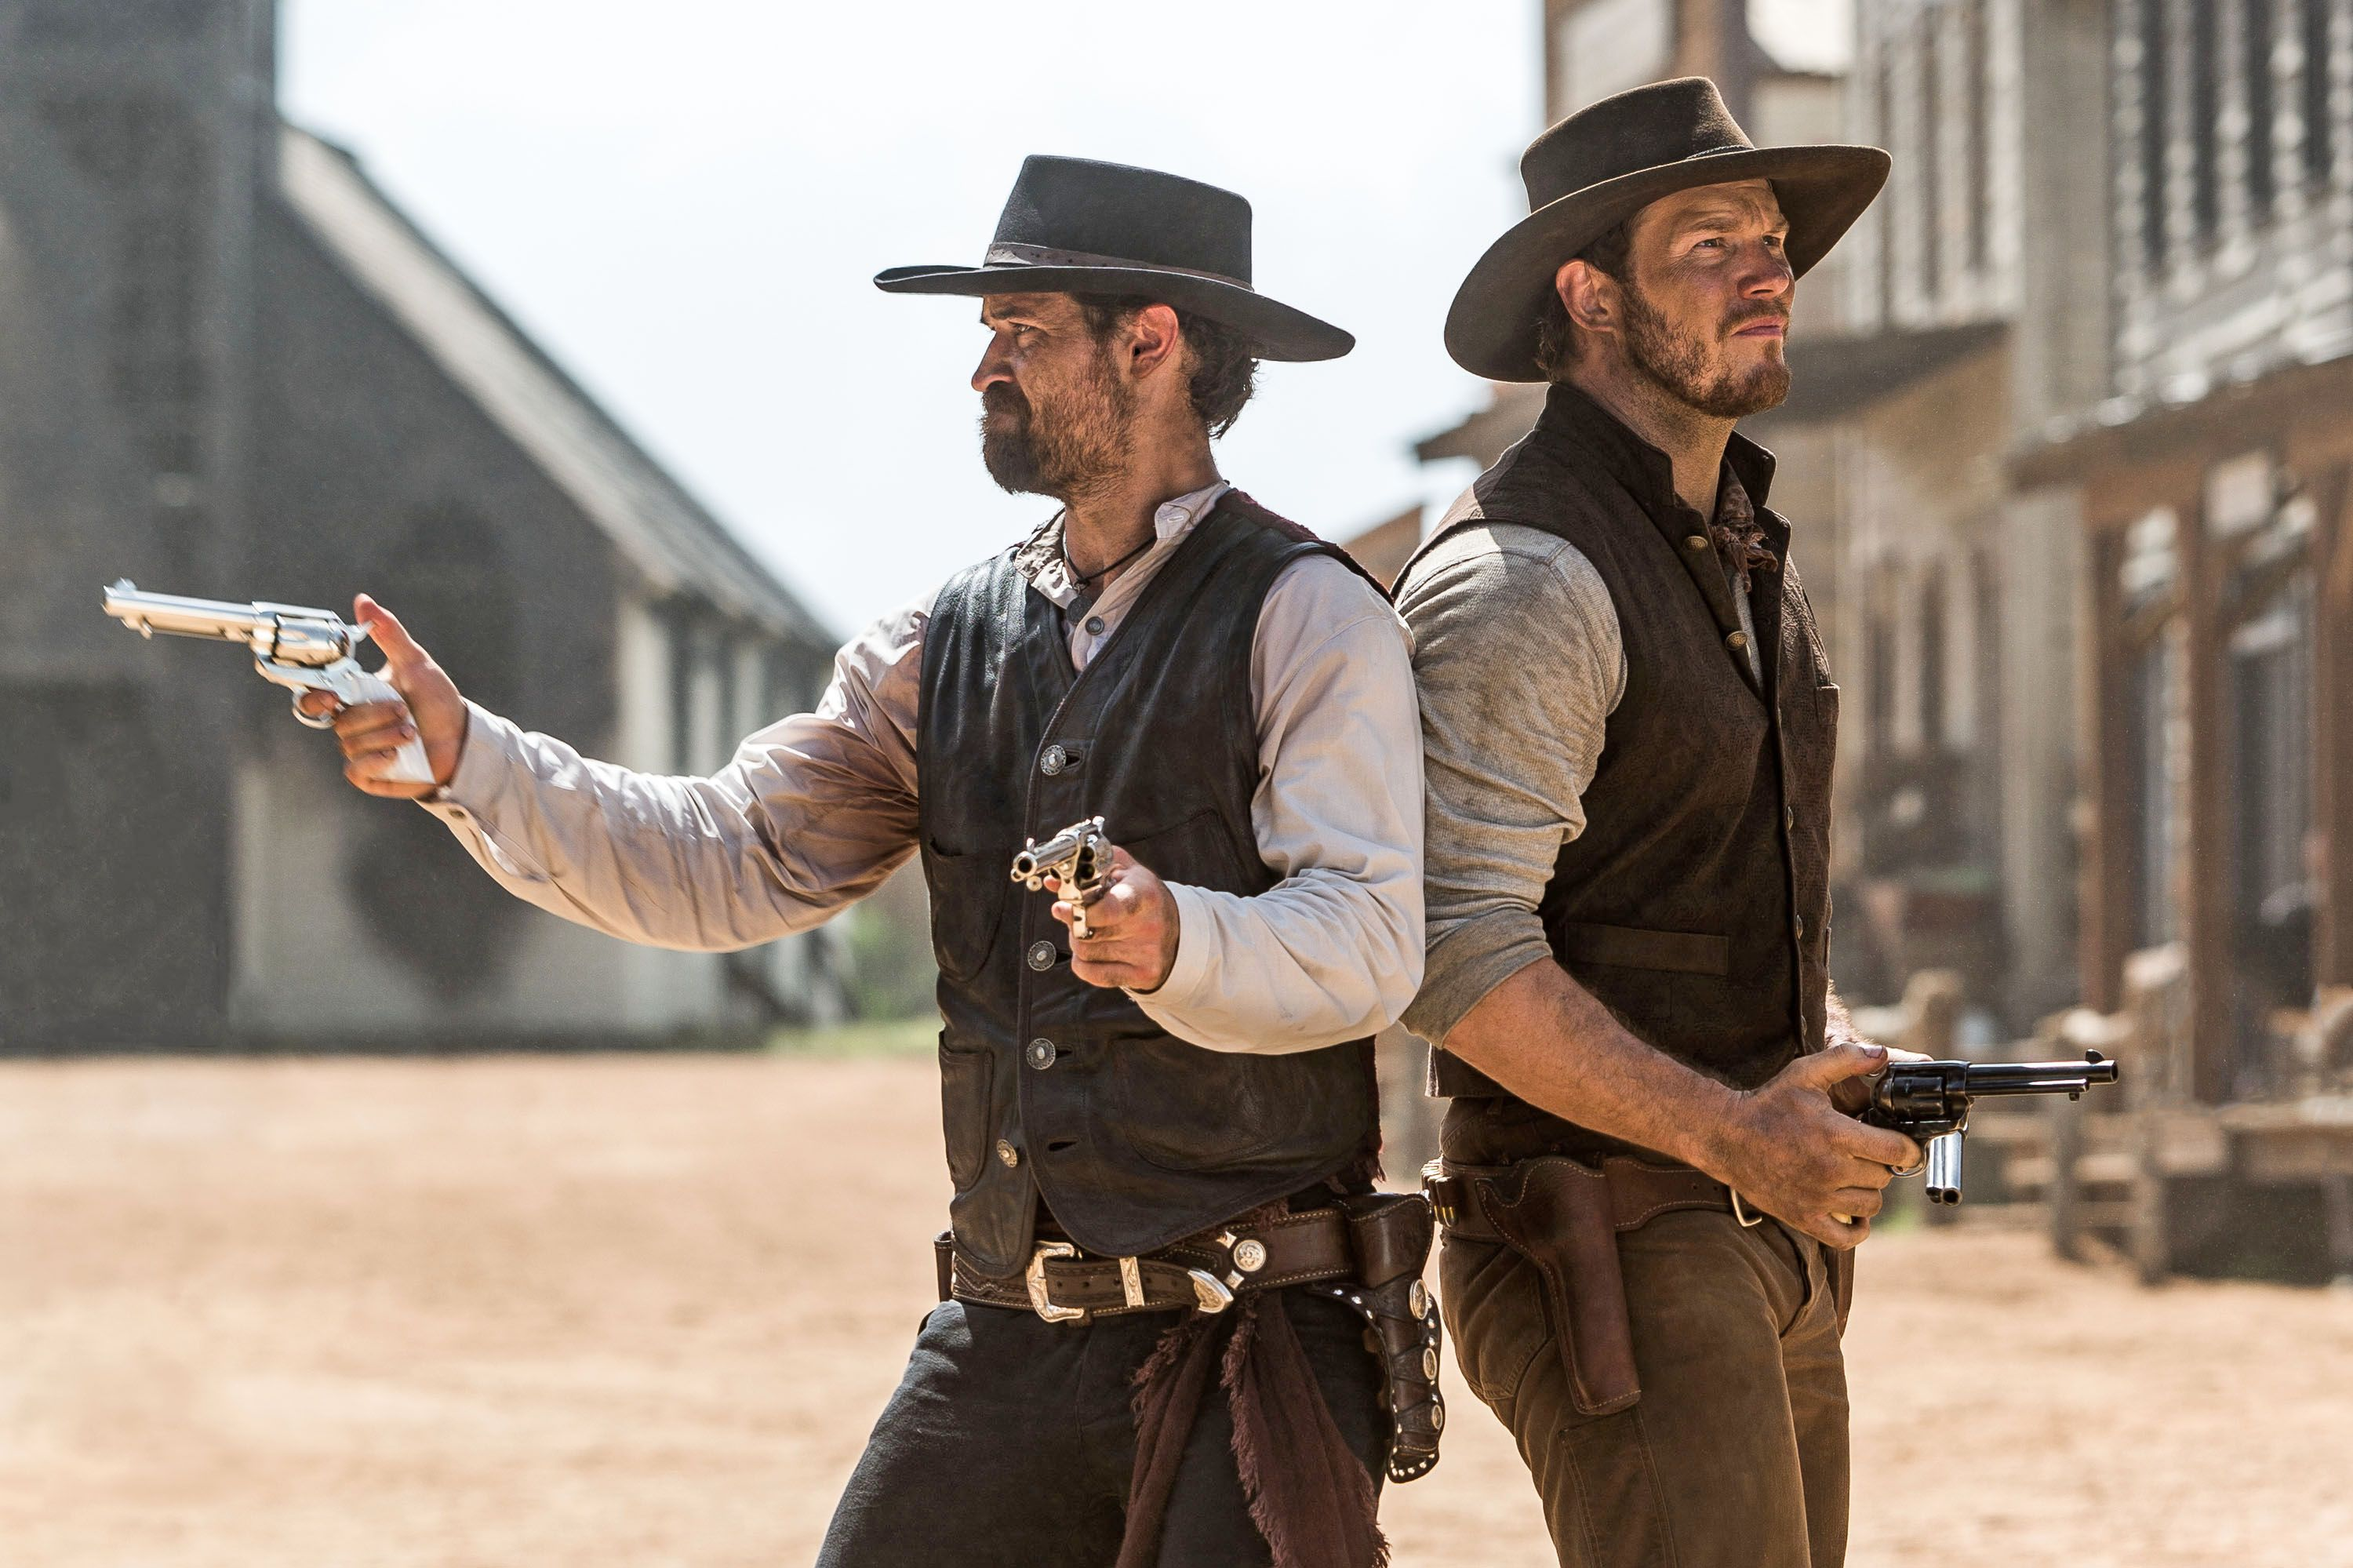 caf8cbe0a0def Vasquez and Faraday - The Magnificent Seven - this movie turned out to be  really good